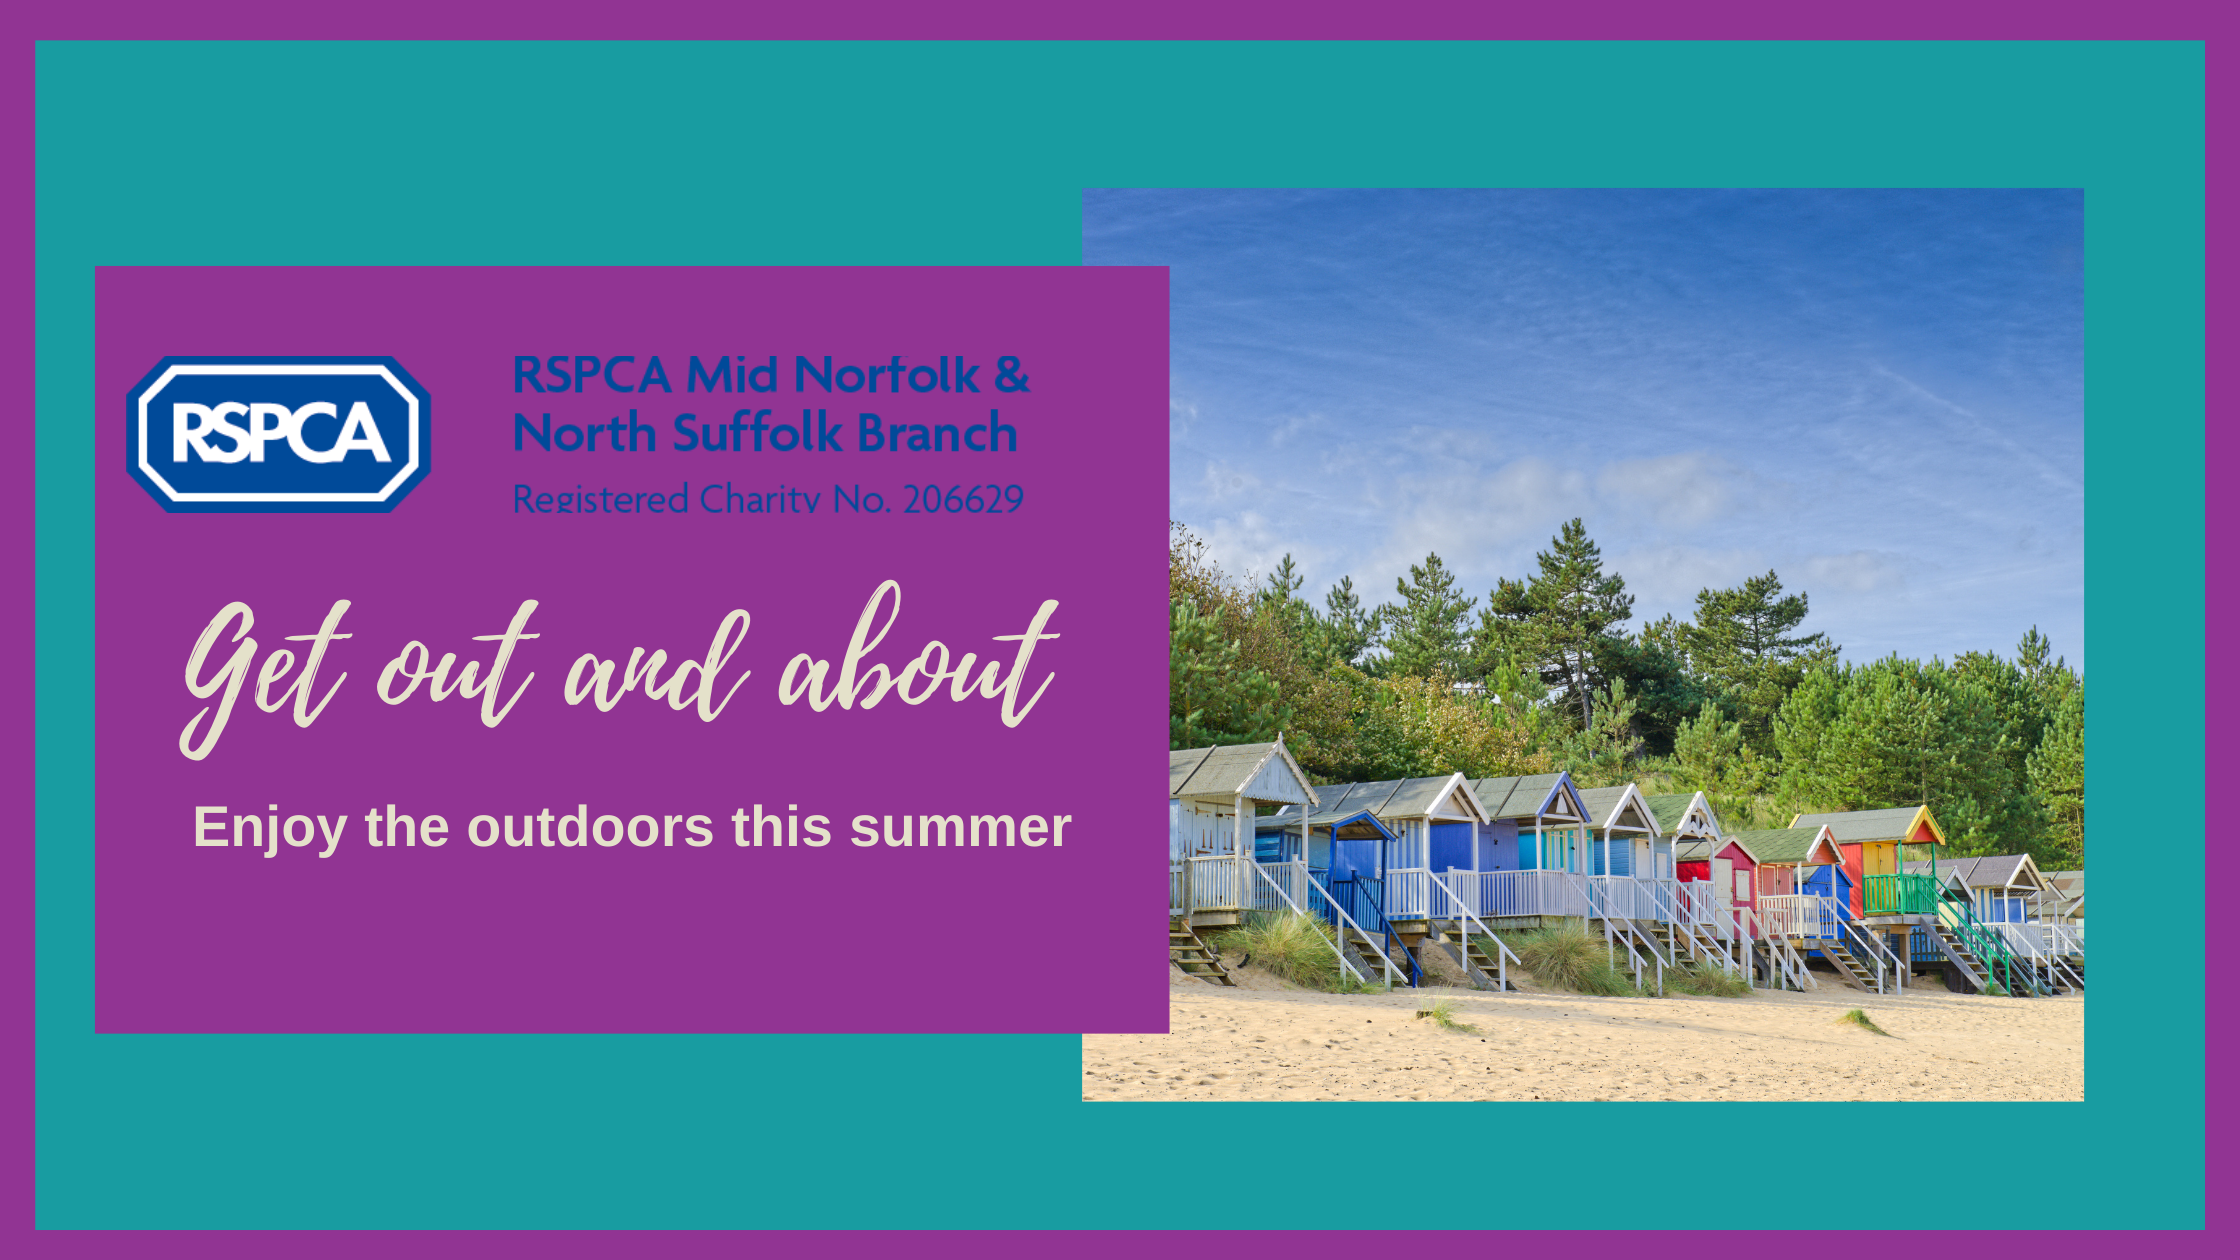 Get out and about this summer